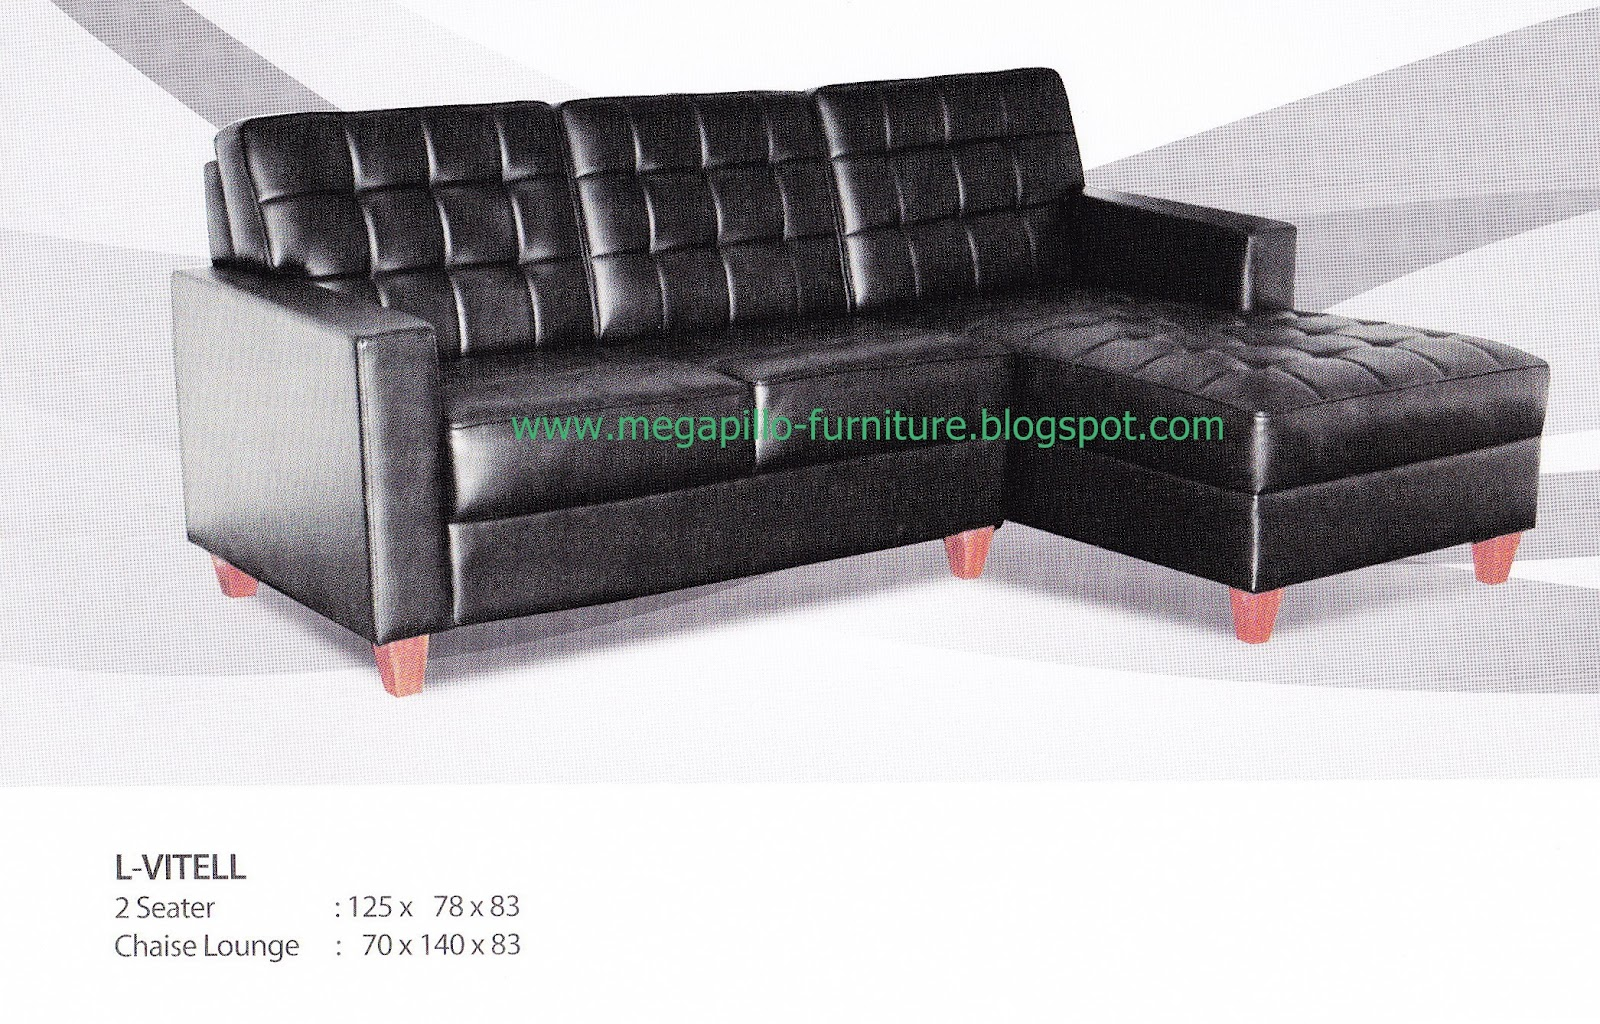 sofa set online shopping century furniture prices megapillo and spring bed shop morres